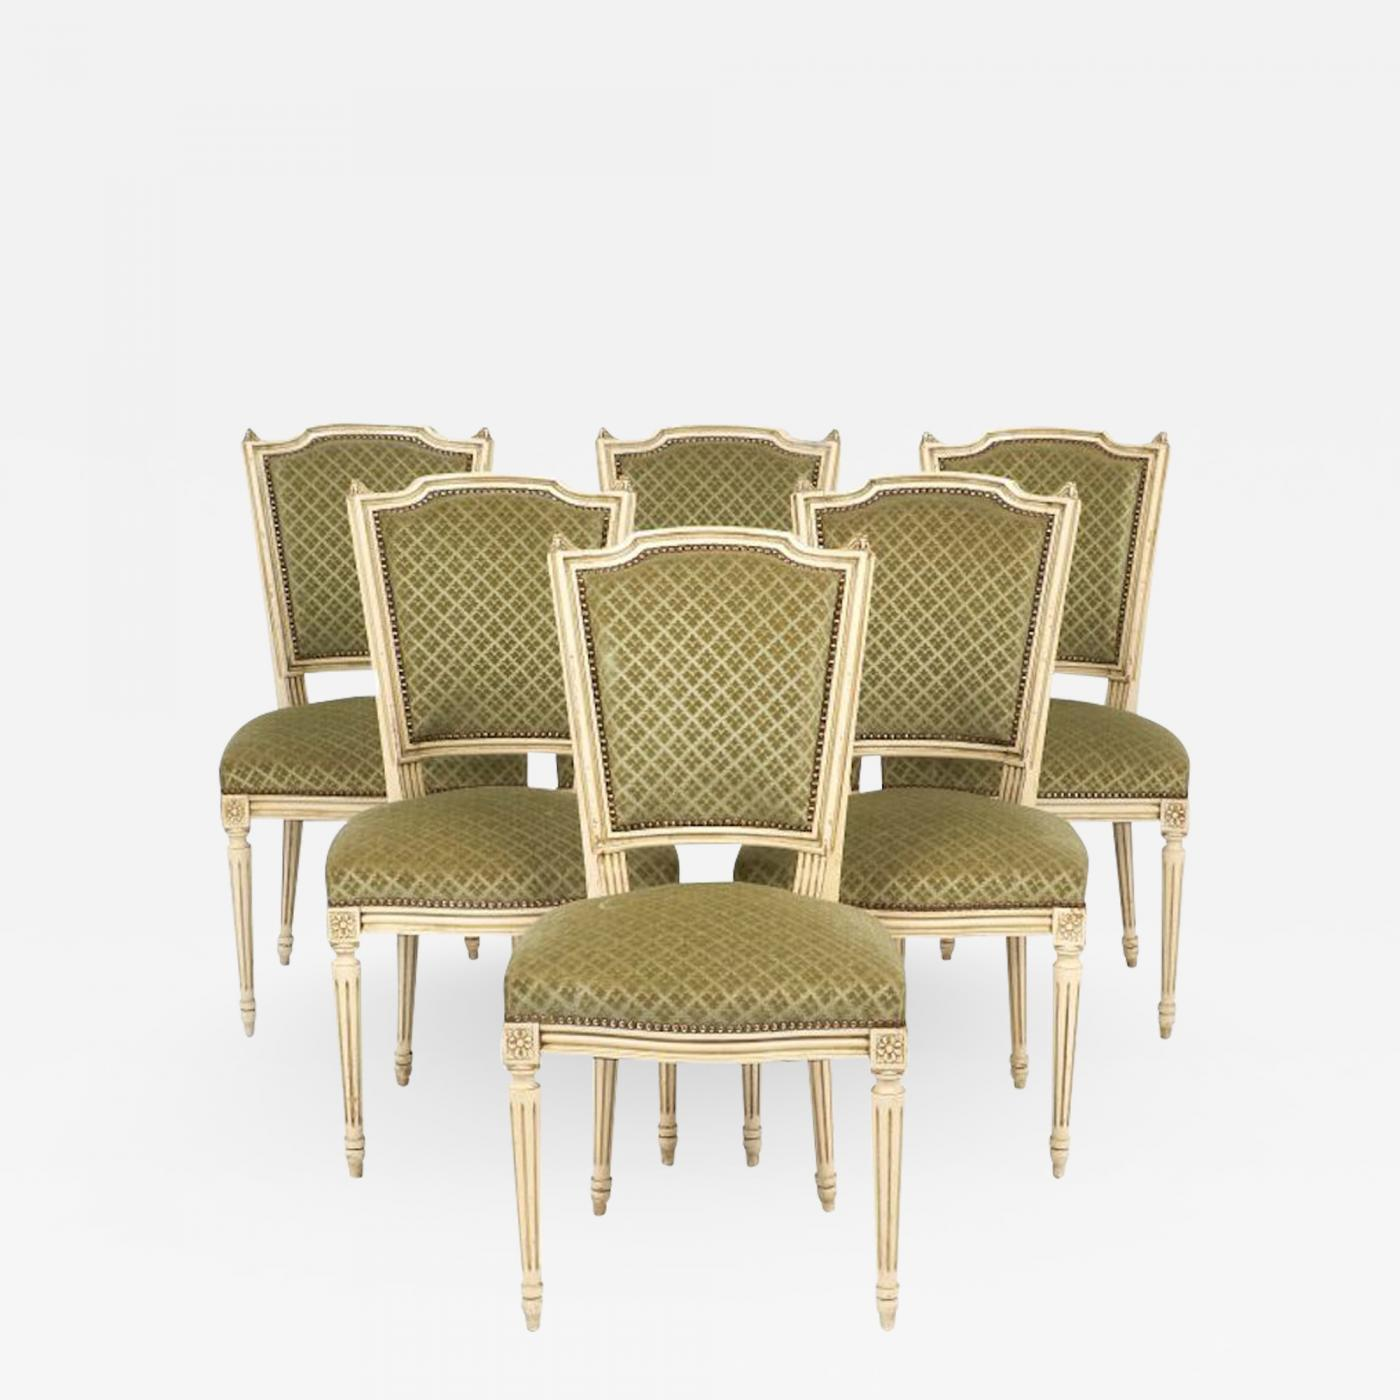 Superieur Listings / Furniture / Seating / Dining Chairs